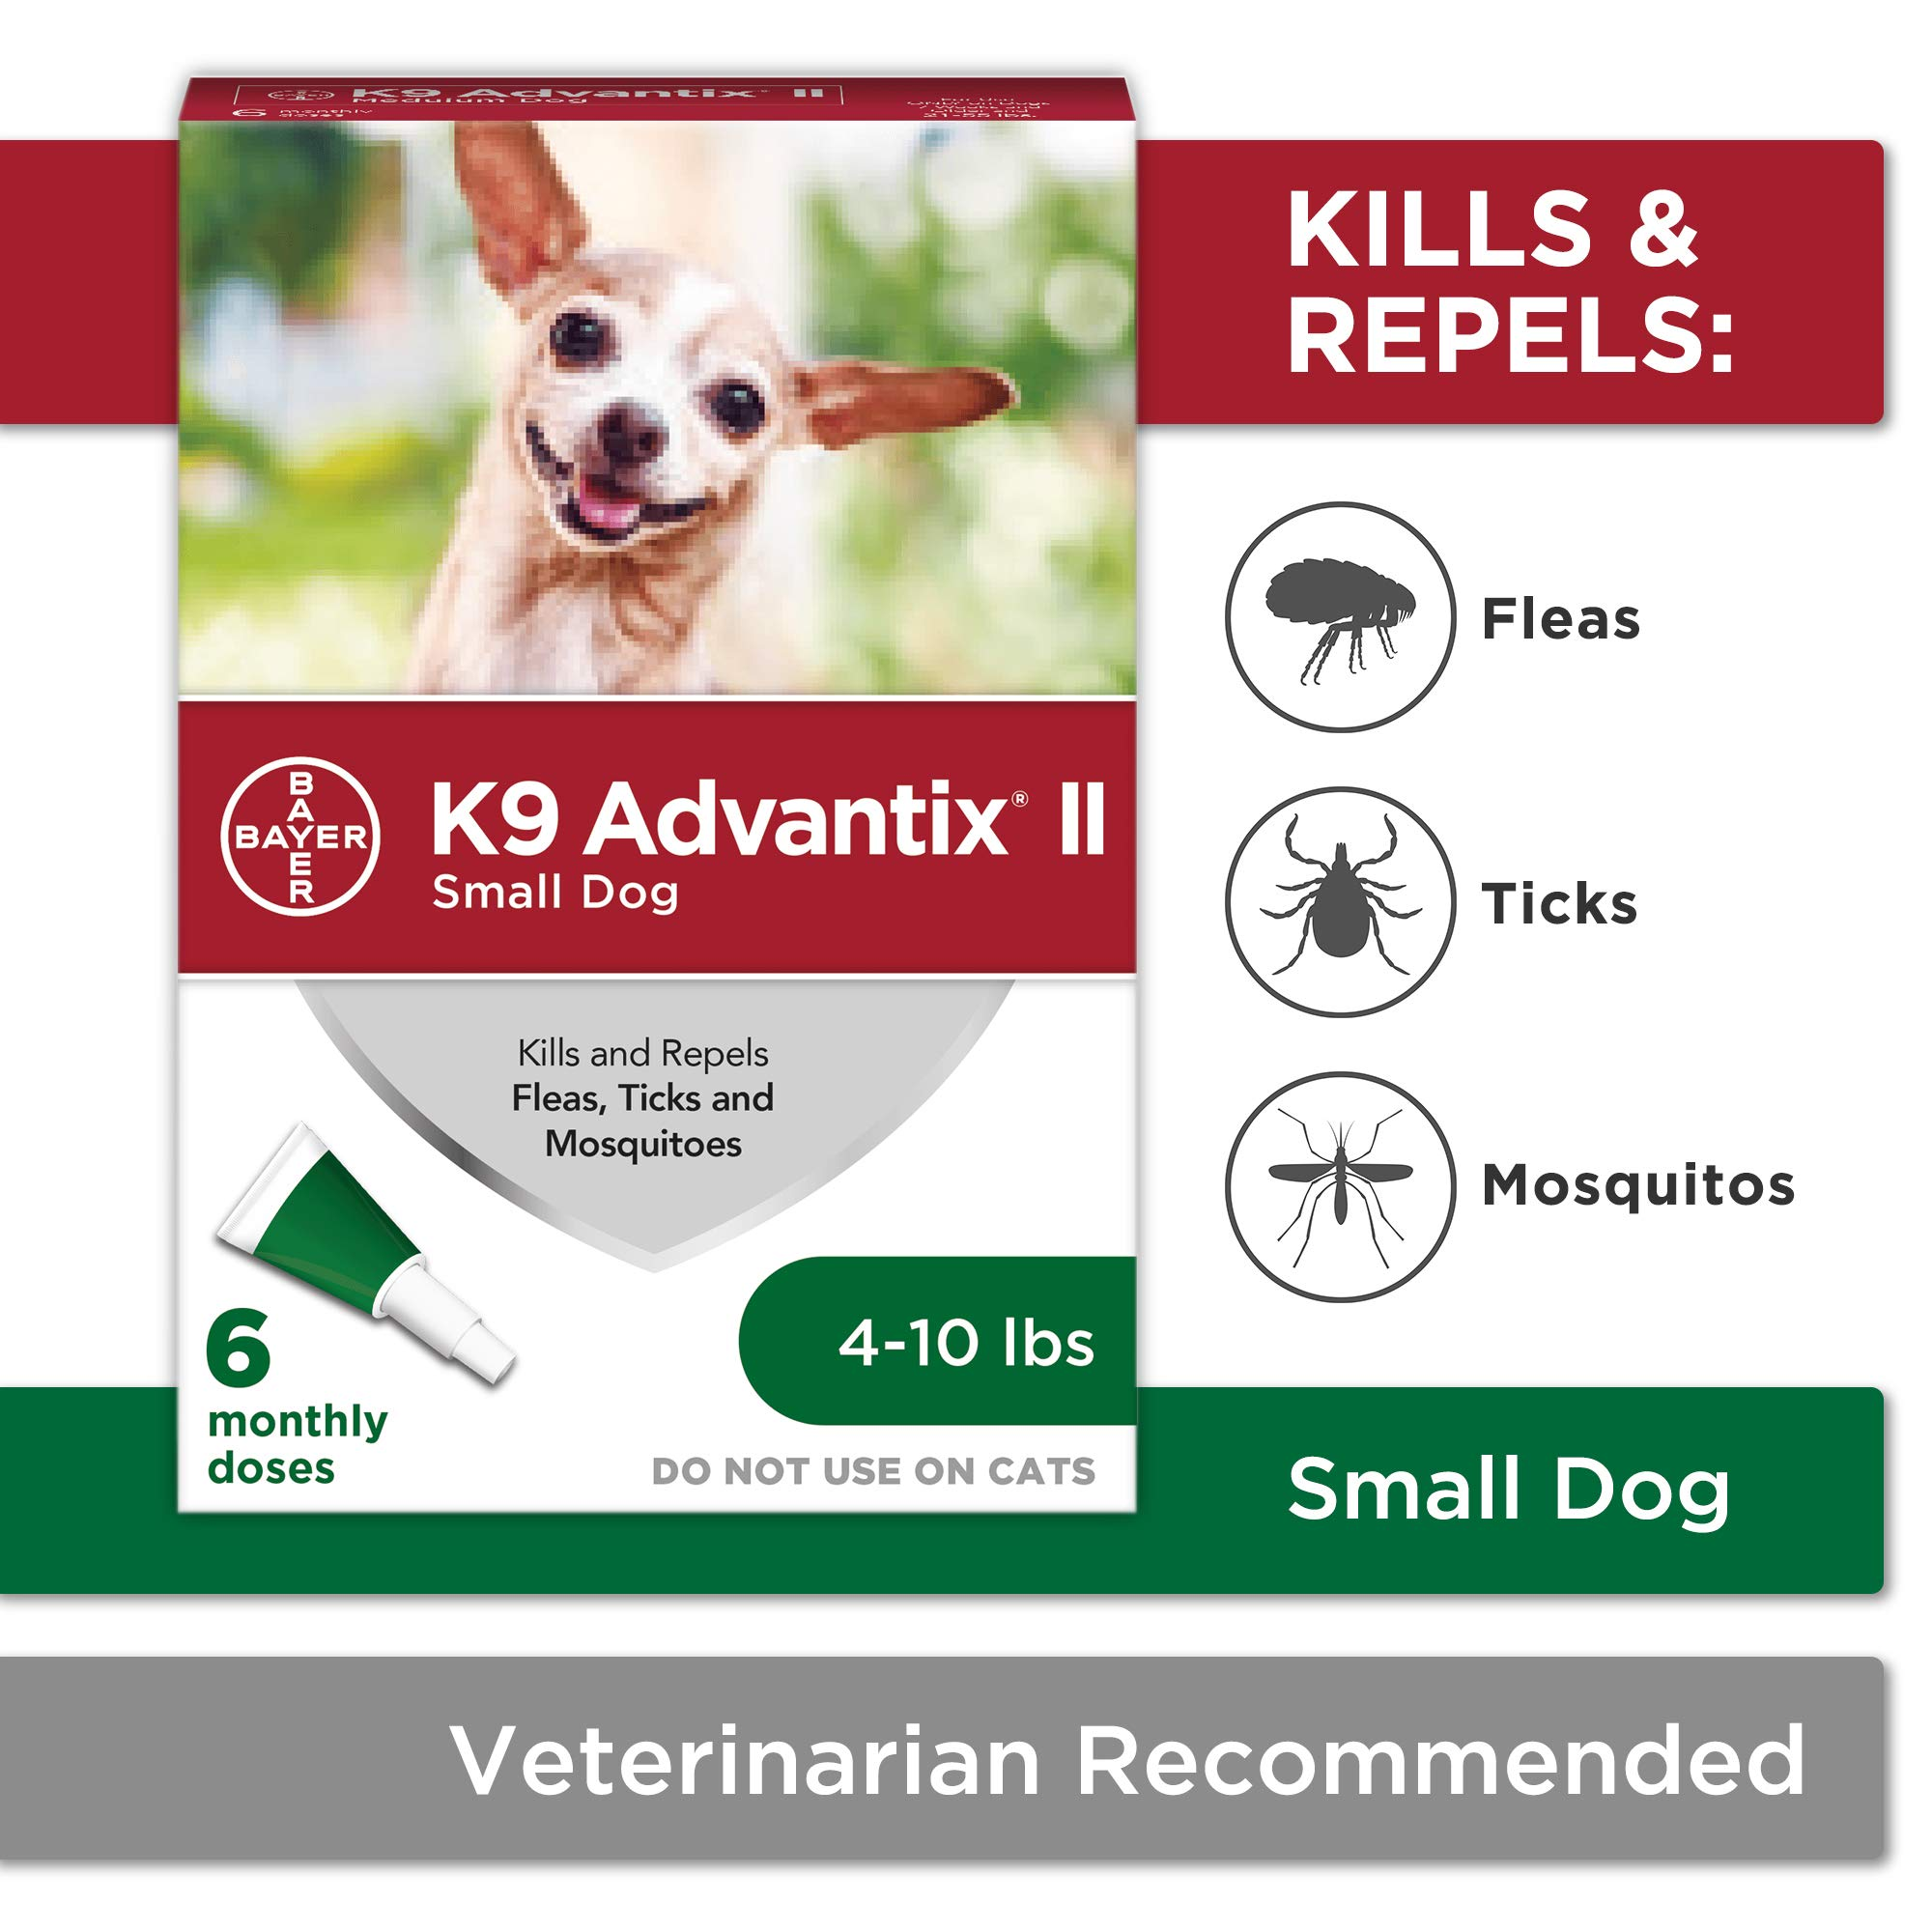 Flea and tick prevention for dogs, dog flea and tick treatment, 6 doses for dogs 4-10 lbs, K9 Advantix II by Bayer Animal Health